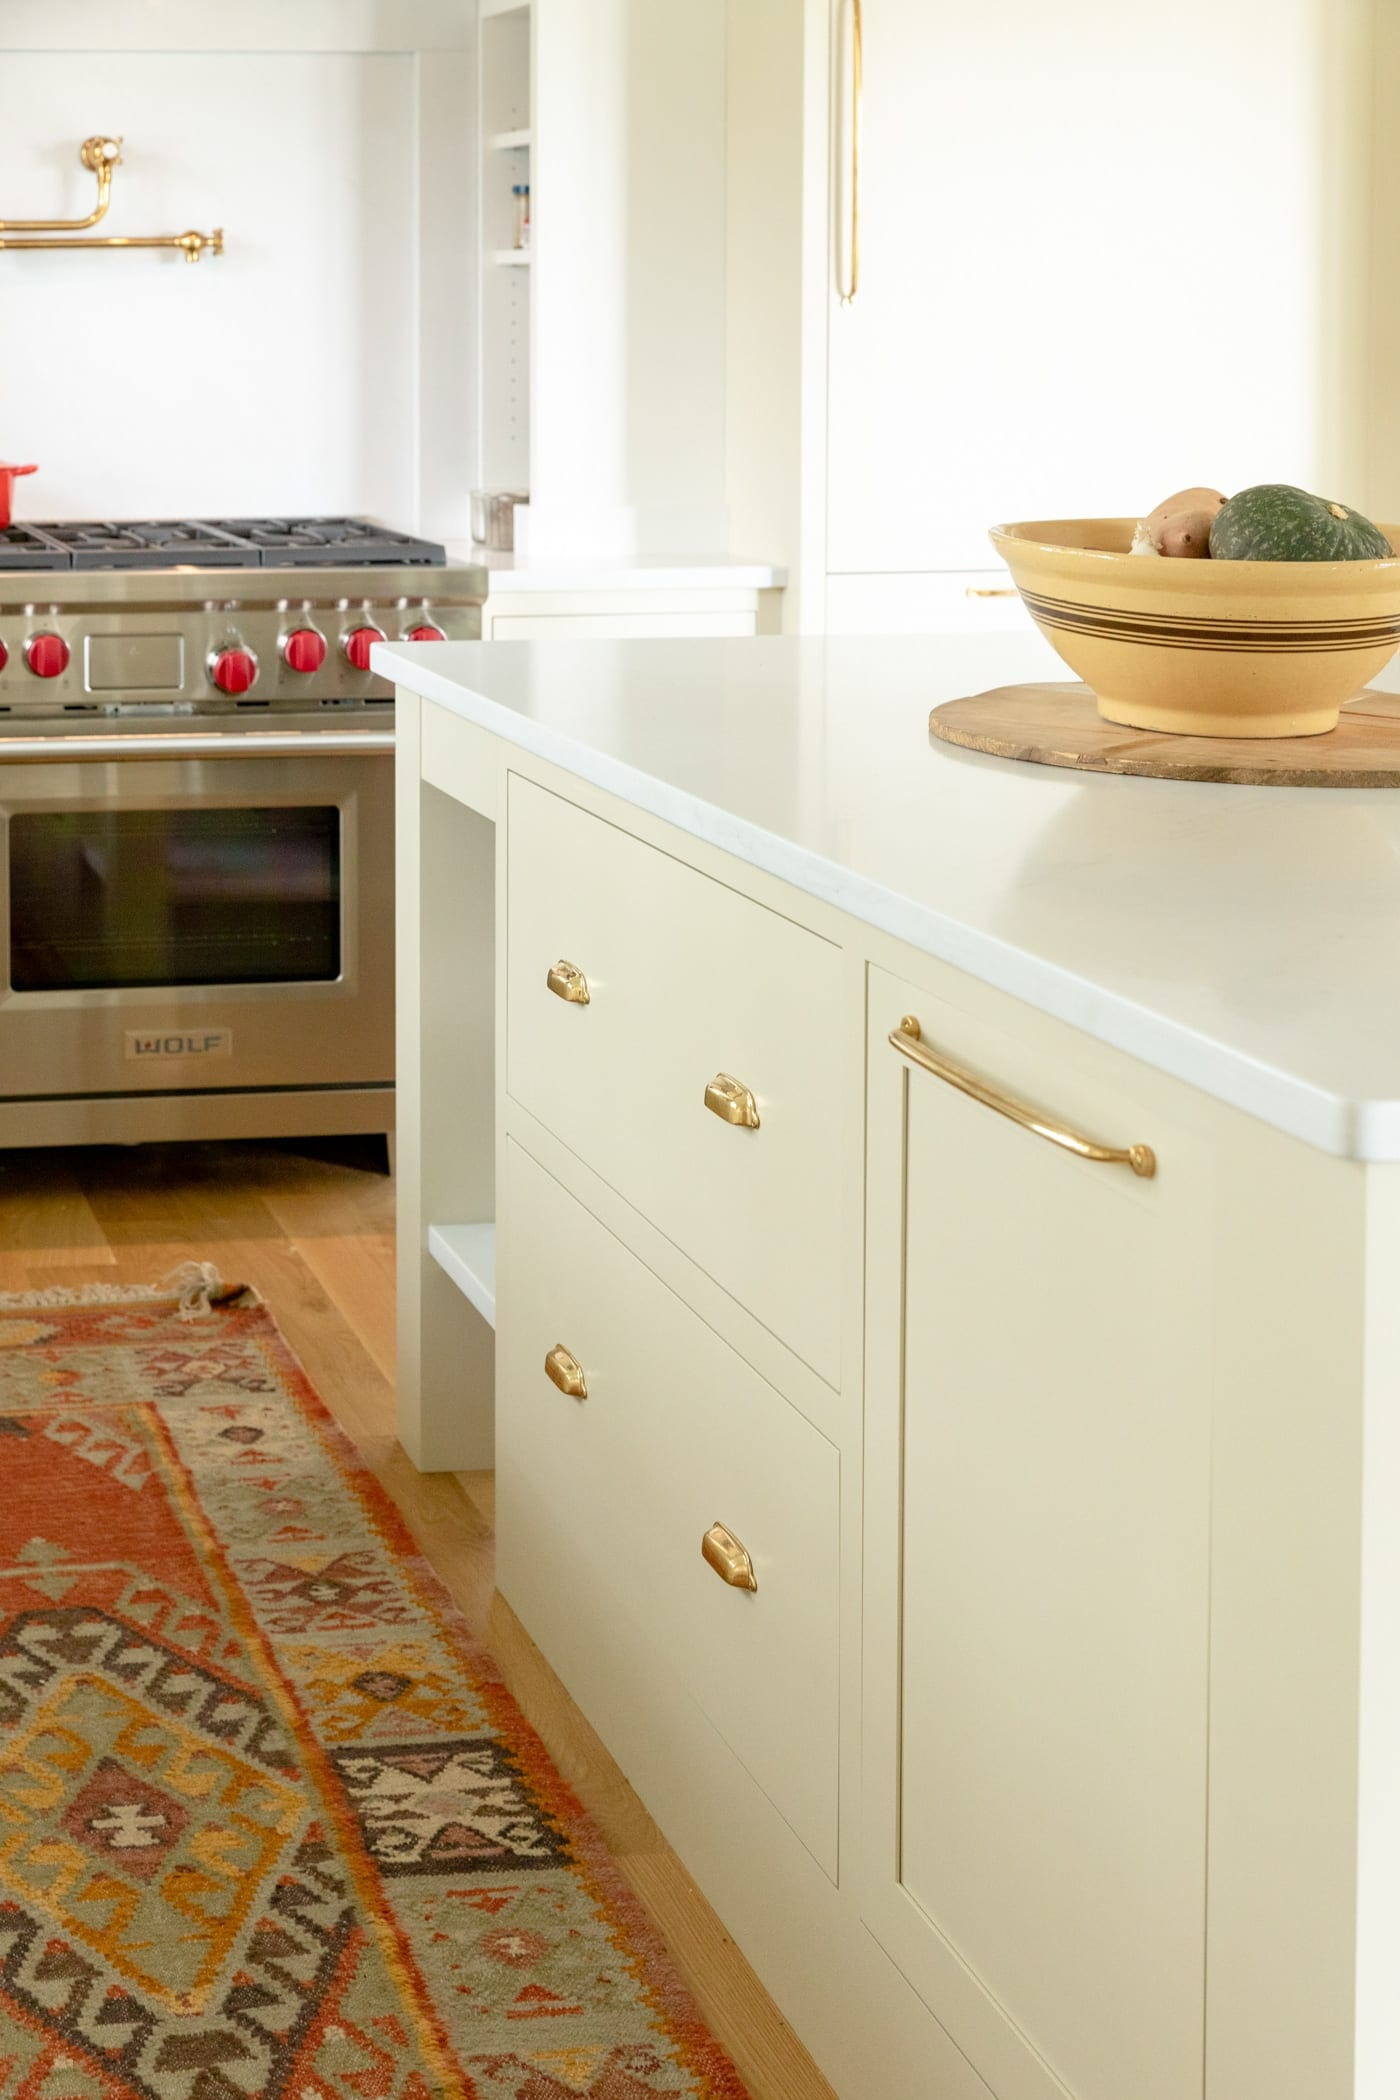 Large drawers in a kitchen island with range in background and red rug on hardwood floors